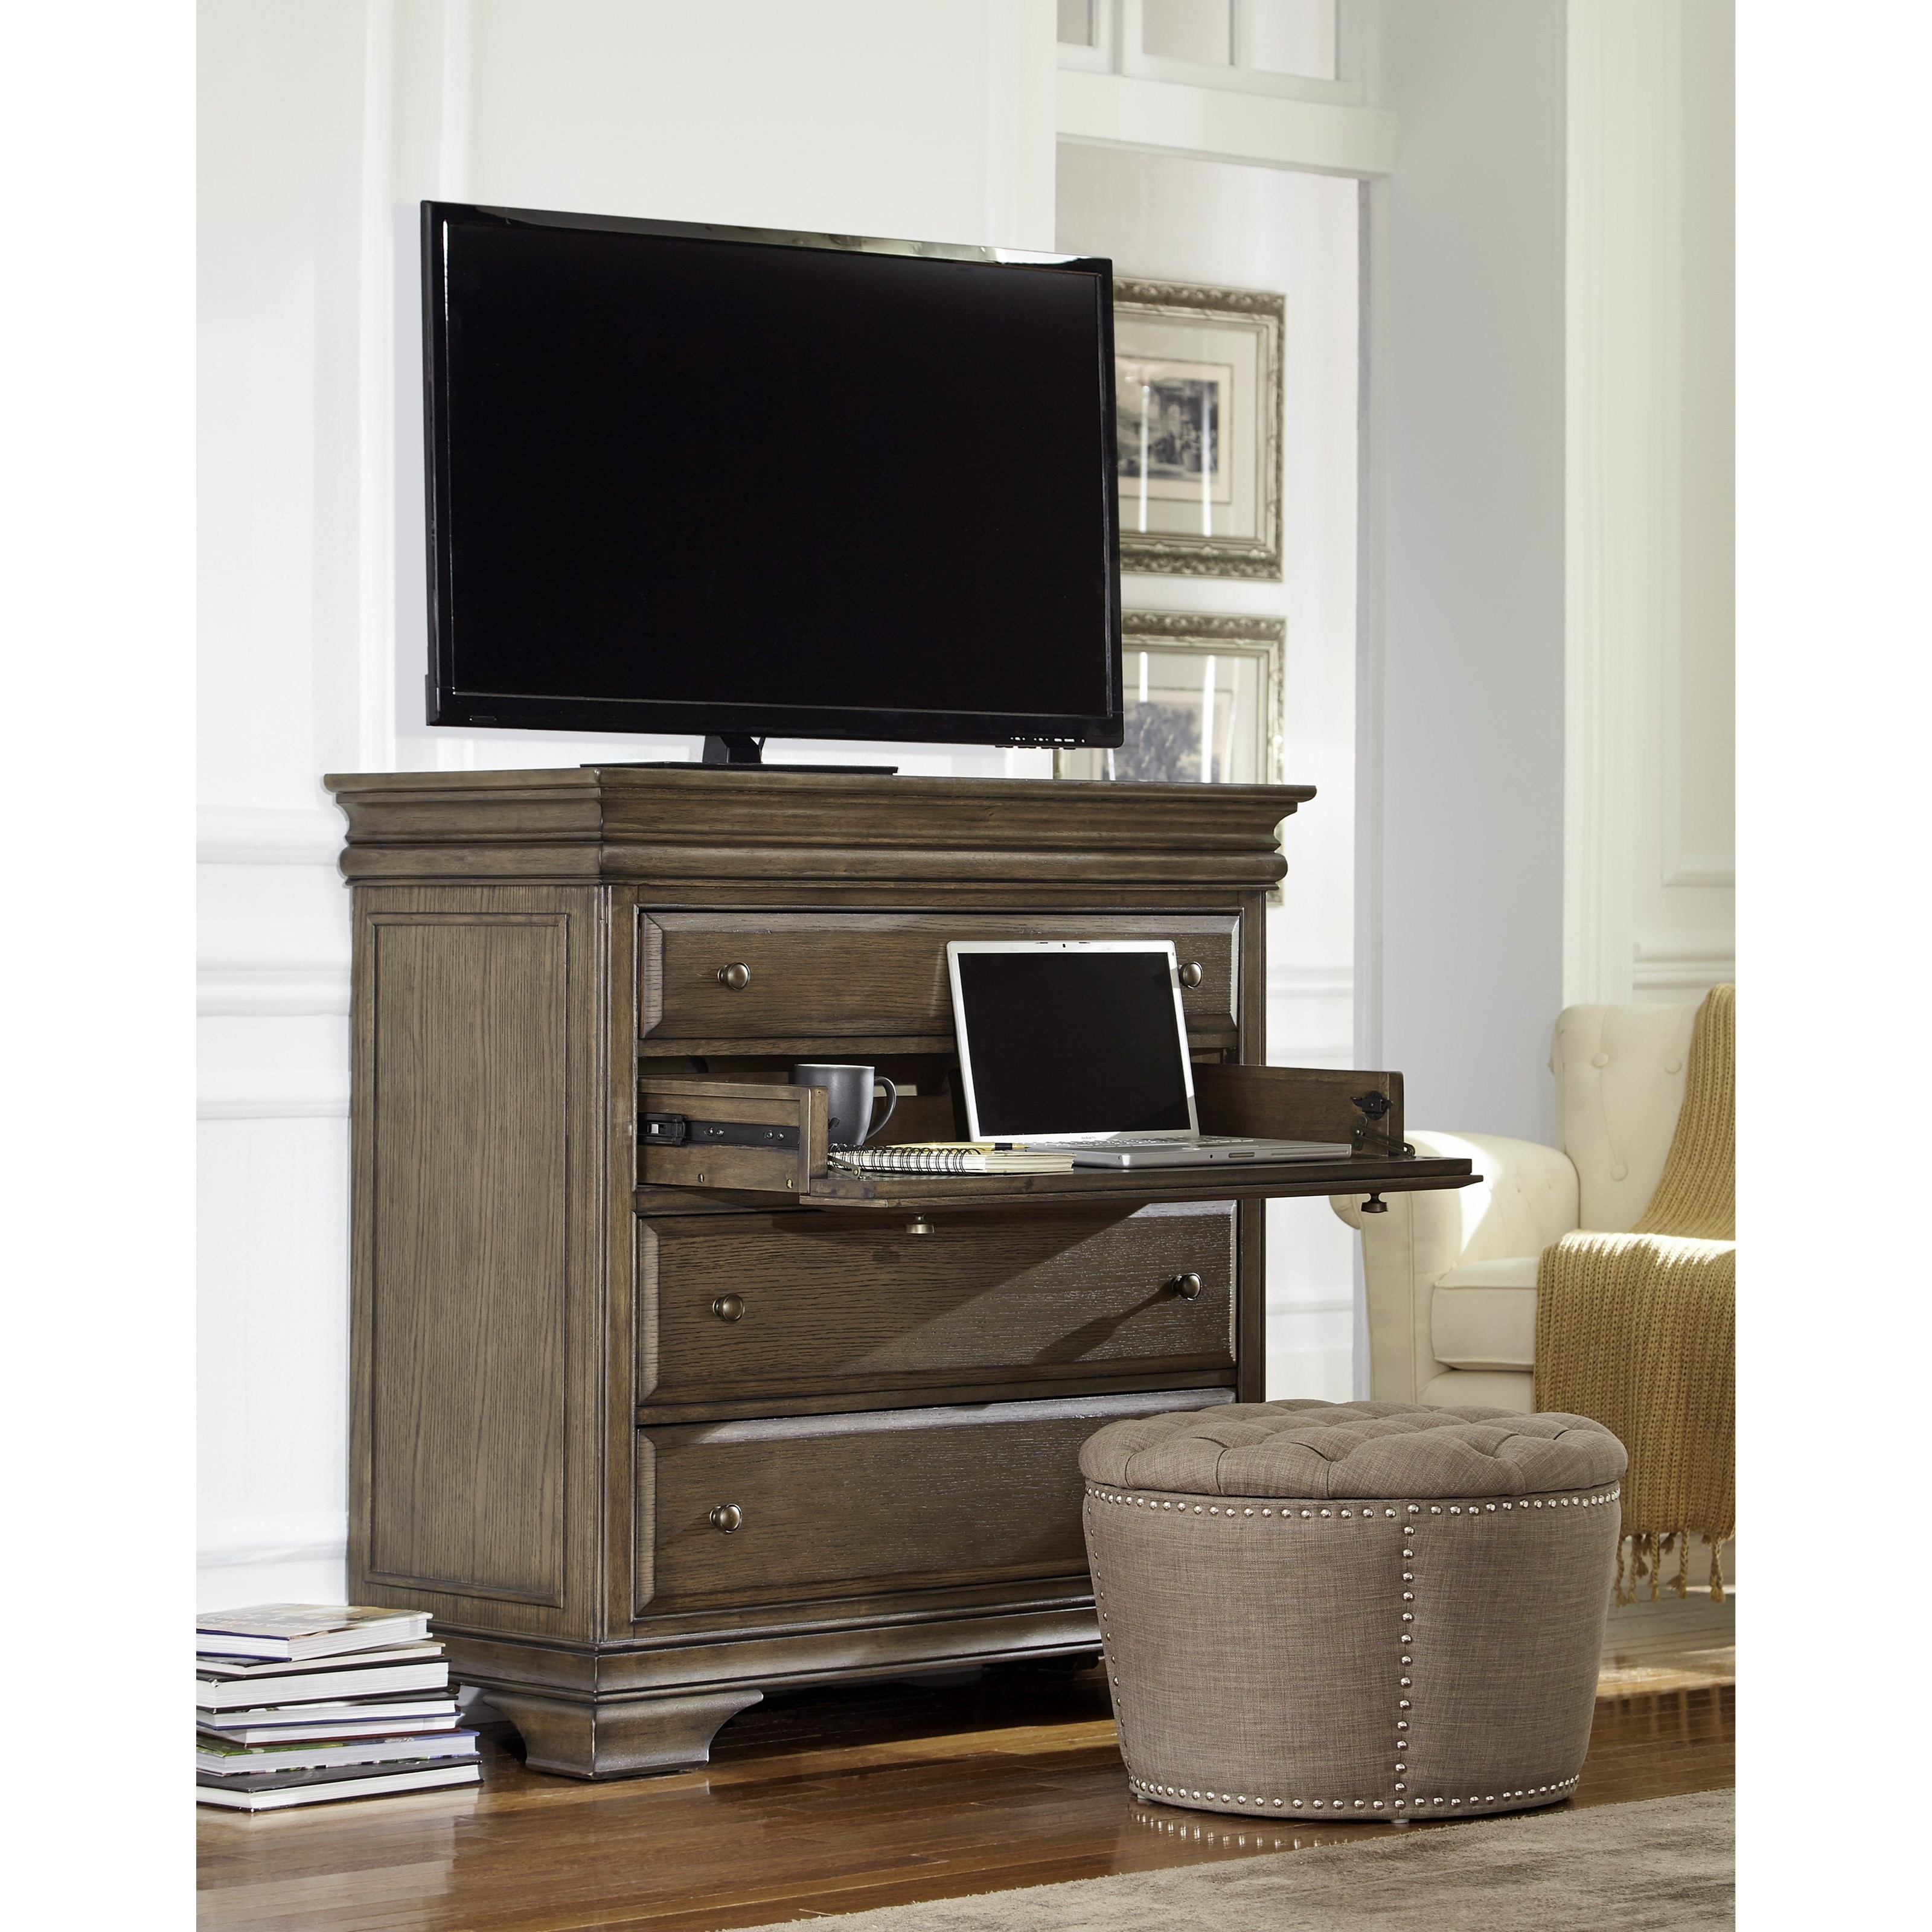 Aspenhome Arcadia I92 486 Media Chest With Outlets Hudson 39 S Furniture Media Chests